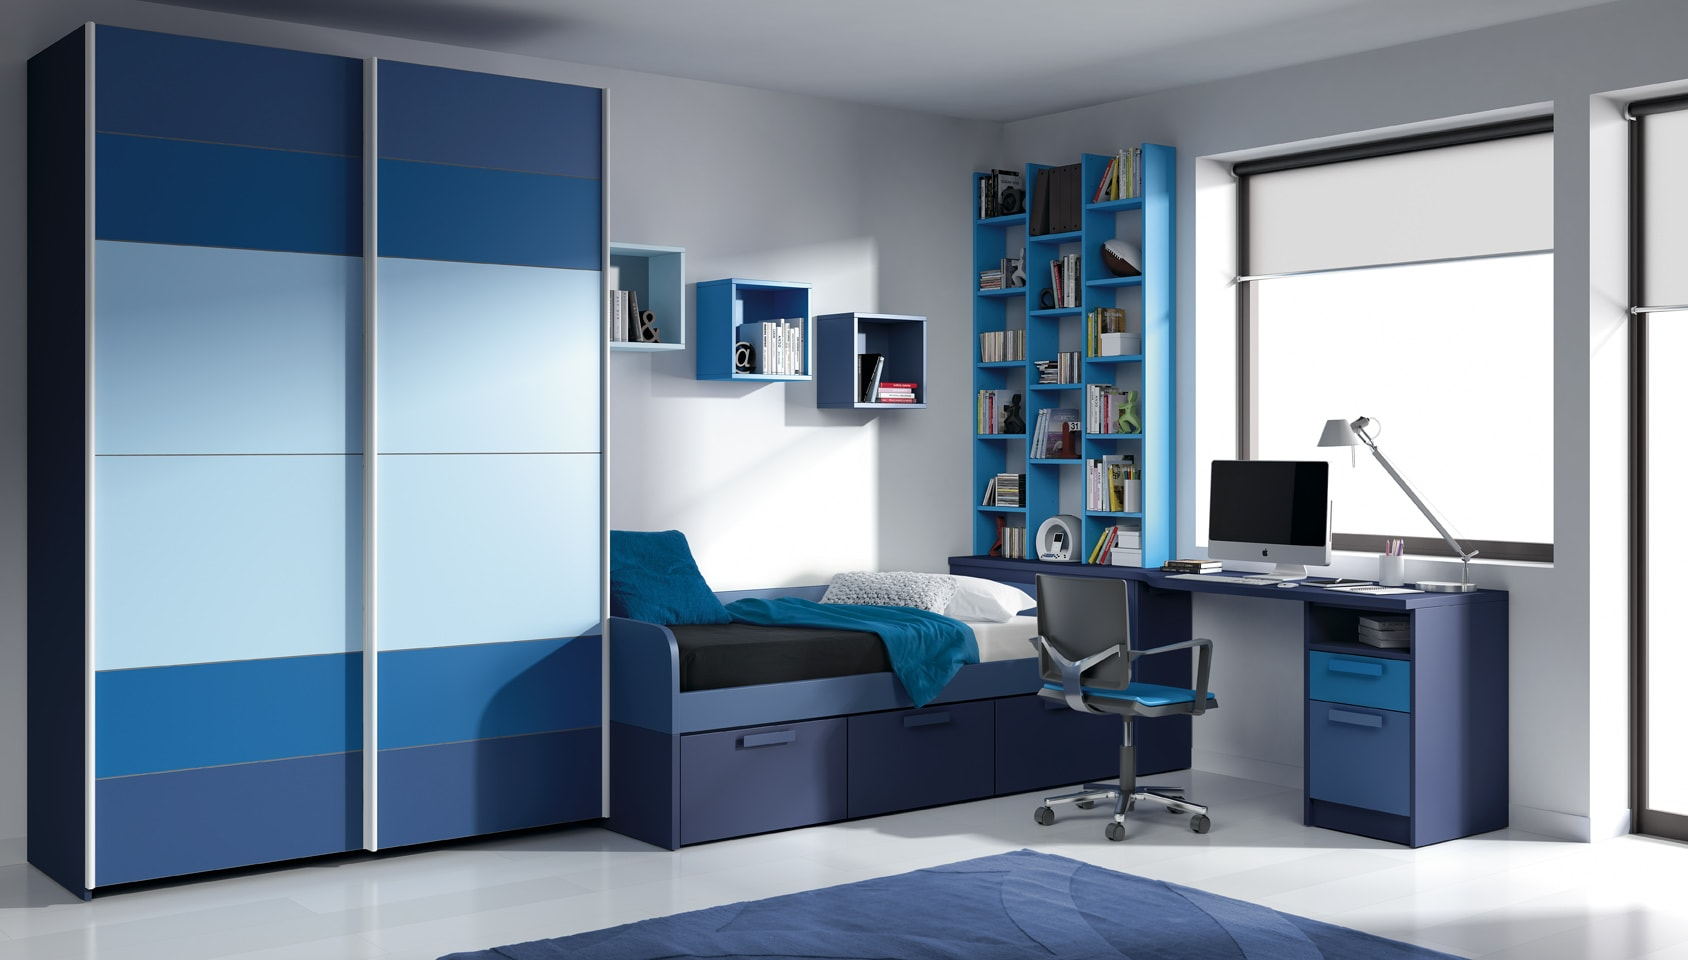 affordable finest juveniles a medida azul with diseo de muebles a medida with diseo habitacion juvenil with disear armarios a medida